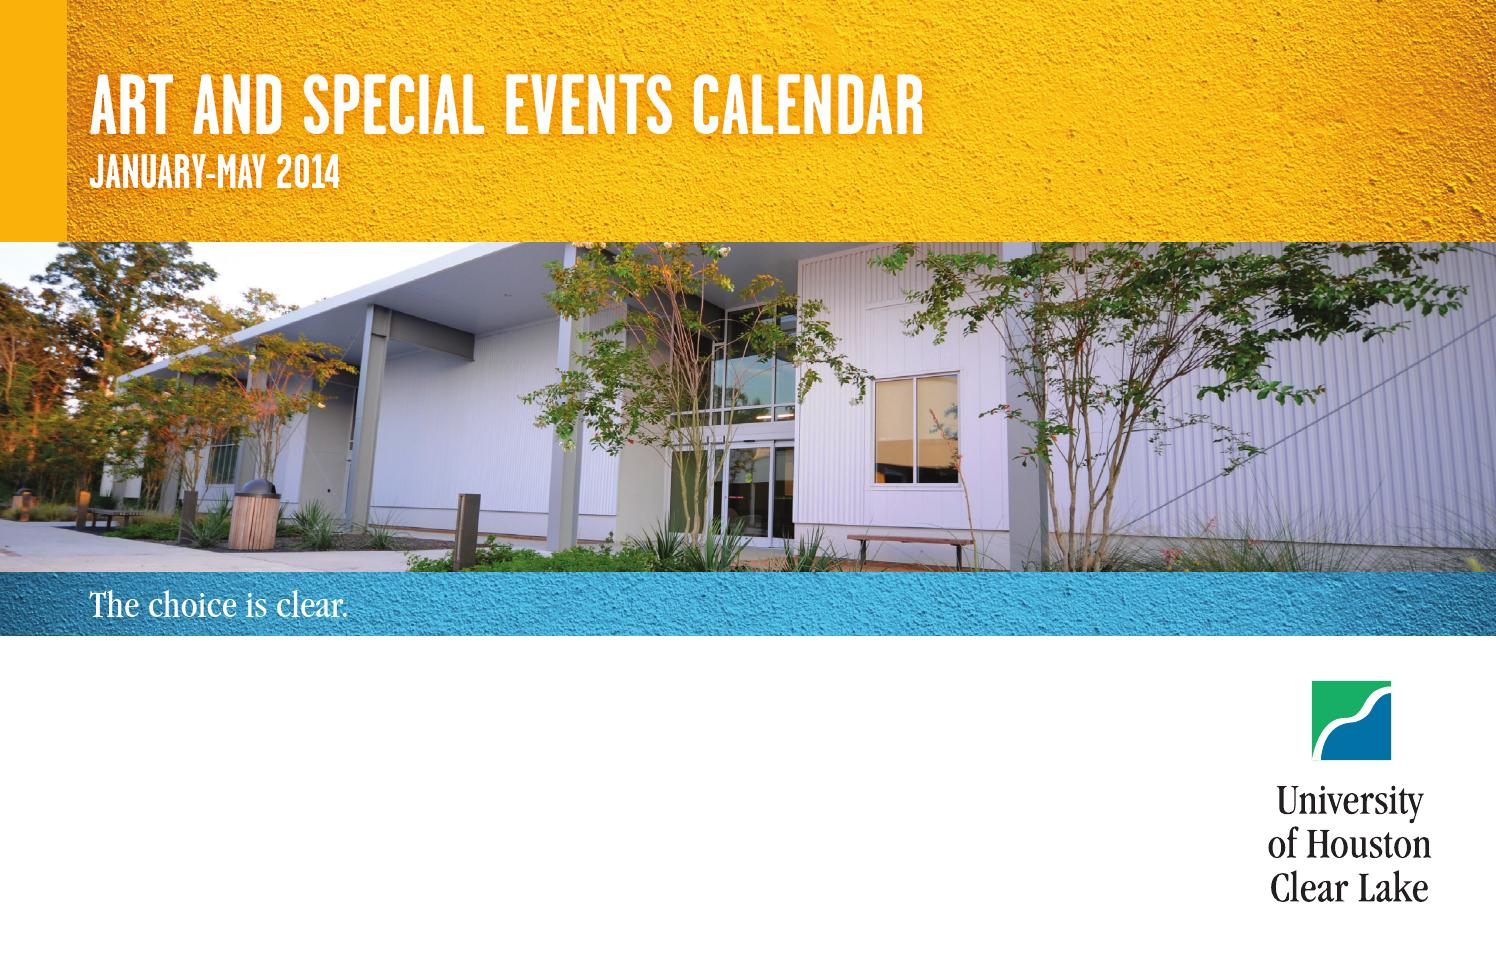 Art Events Calendar : Uhcl art and special events calendar spring by